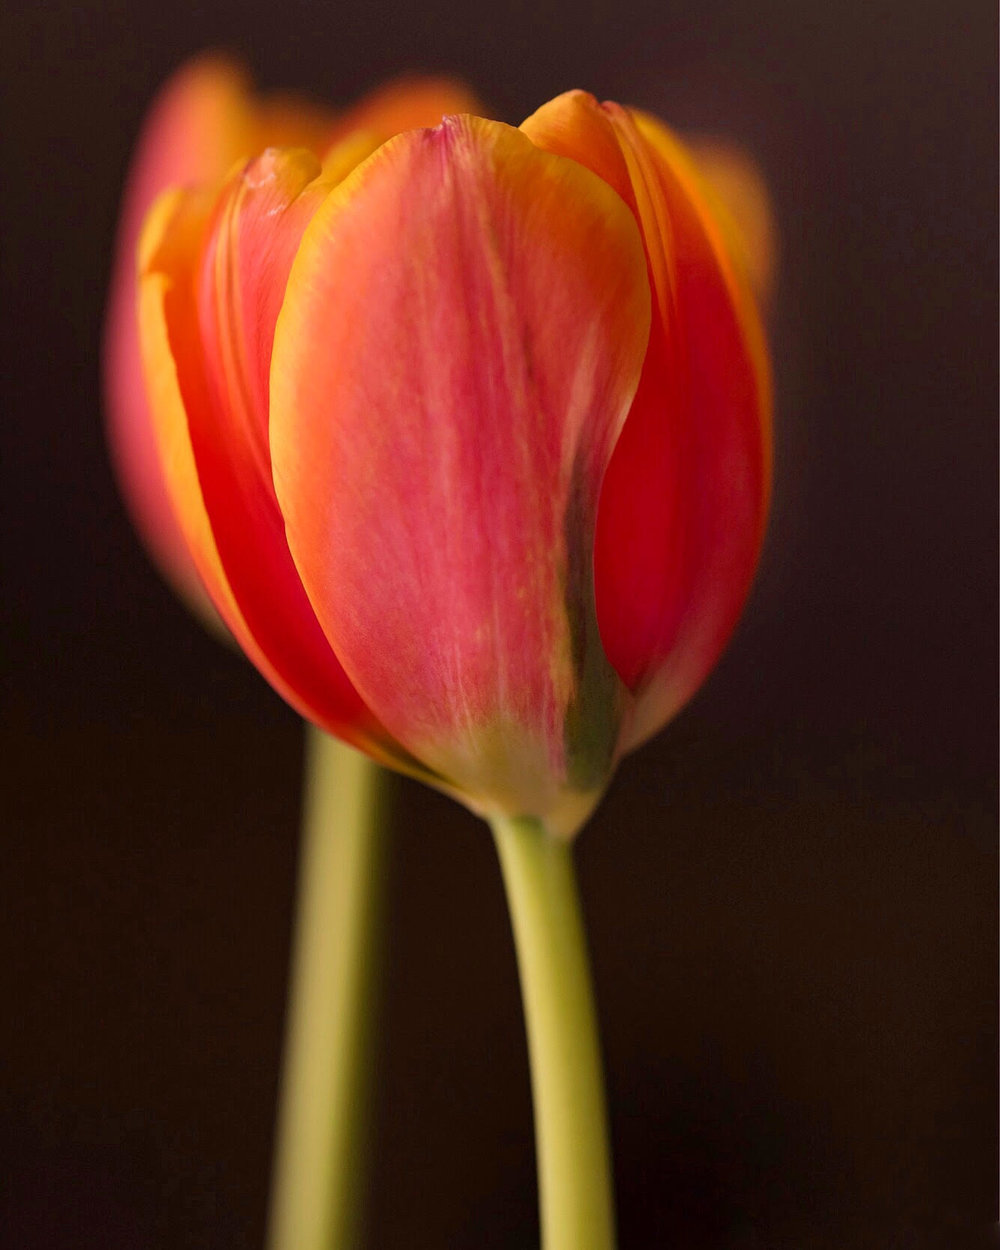 I love the sunset colors in these tulips. When I'm stressed out, I get out my macro lens and get some fresh flowers and create.